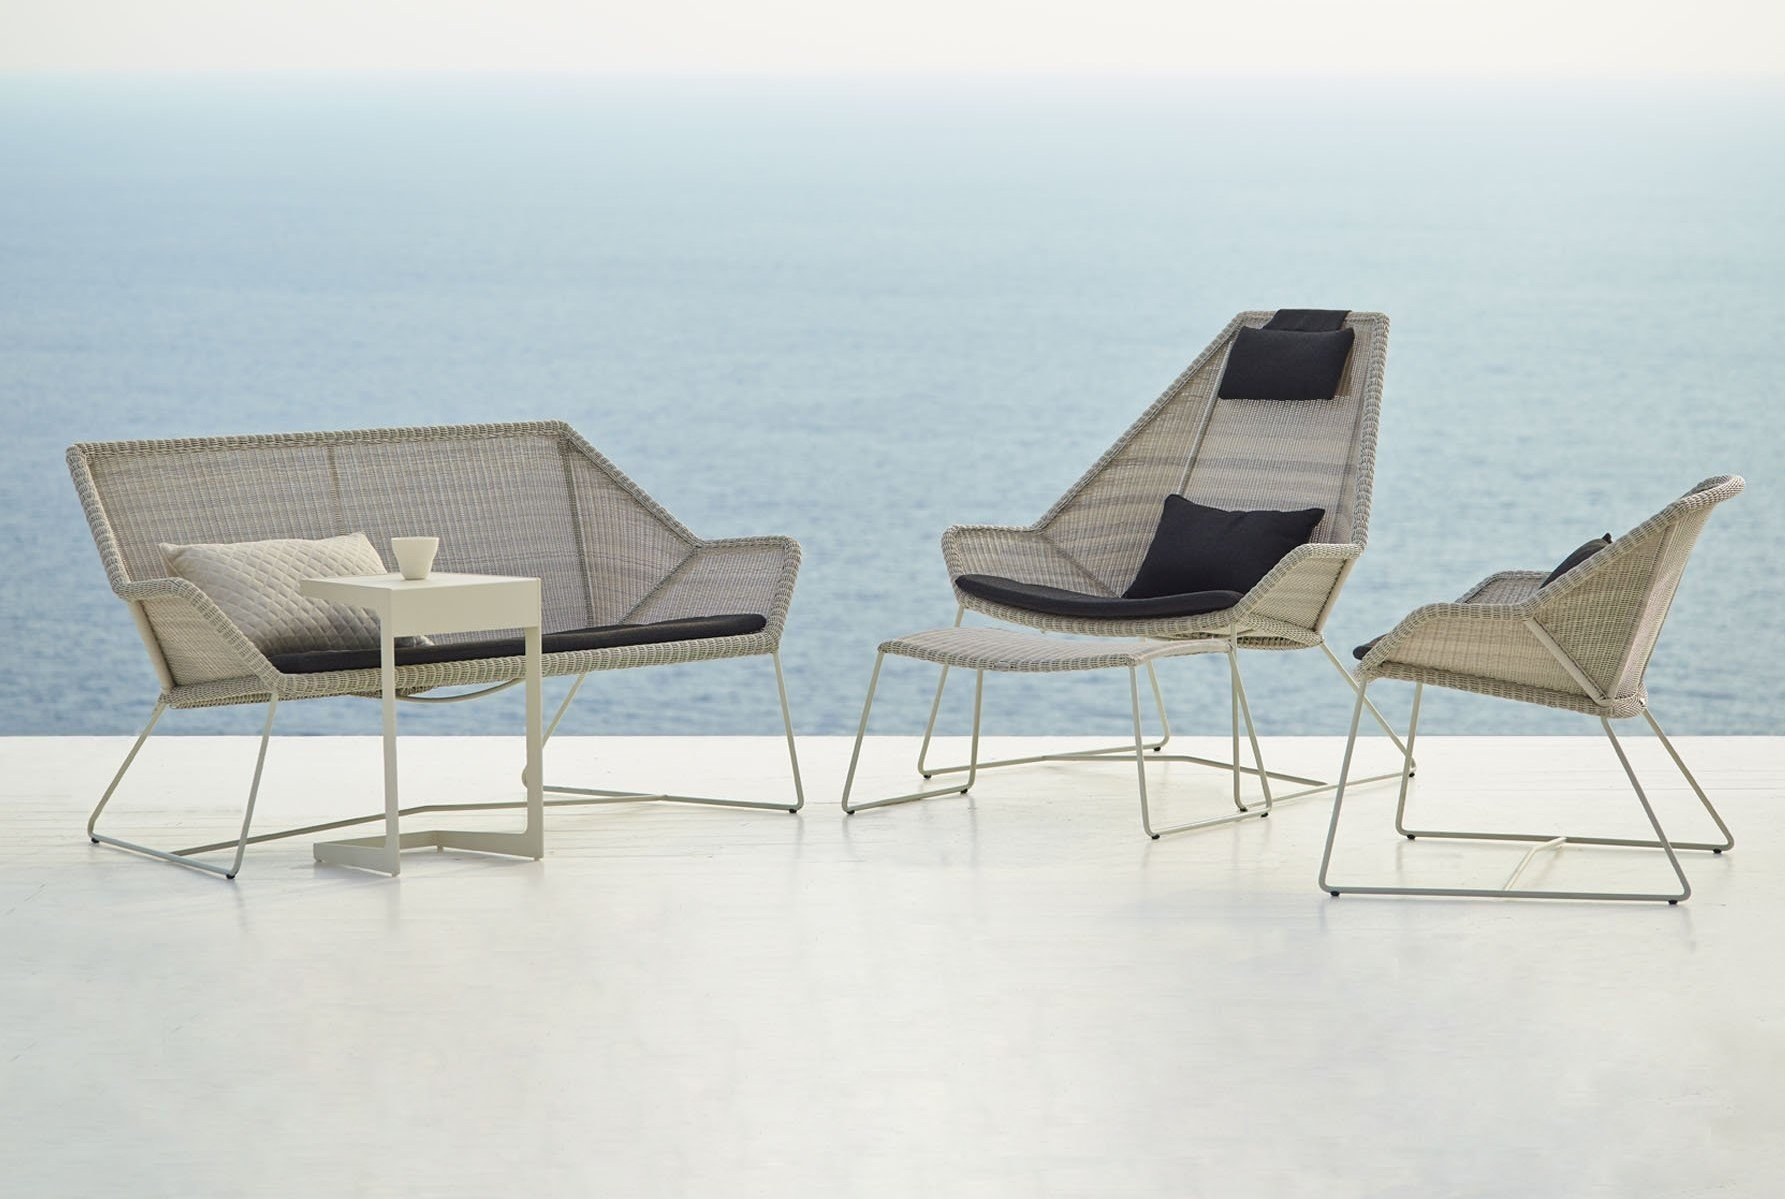 Breeze Lounge Chair  from Cane-line, designed by Strand+Hvass